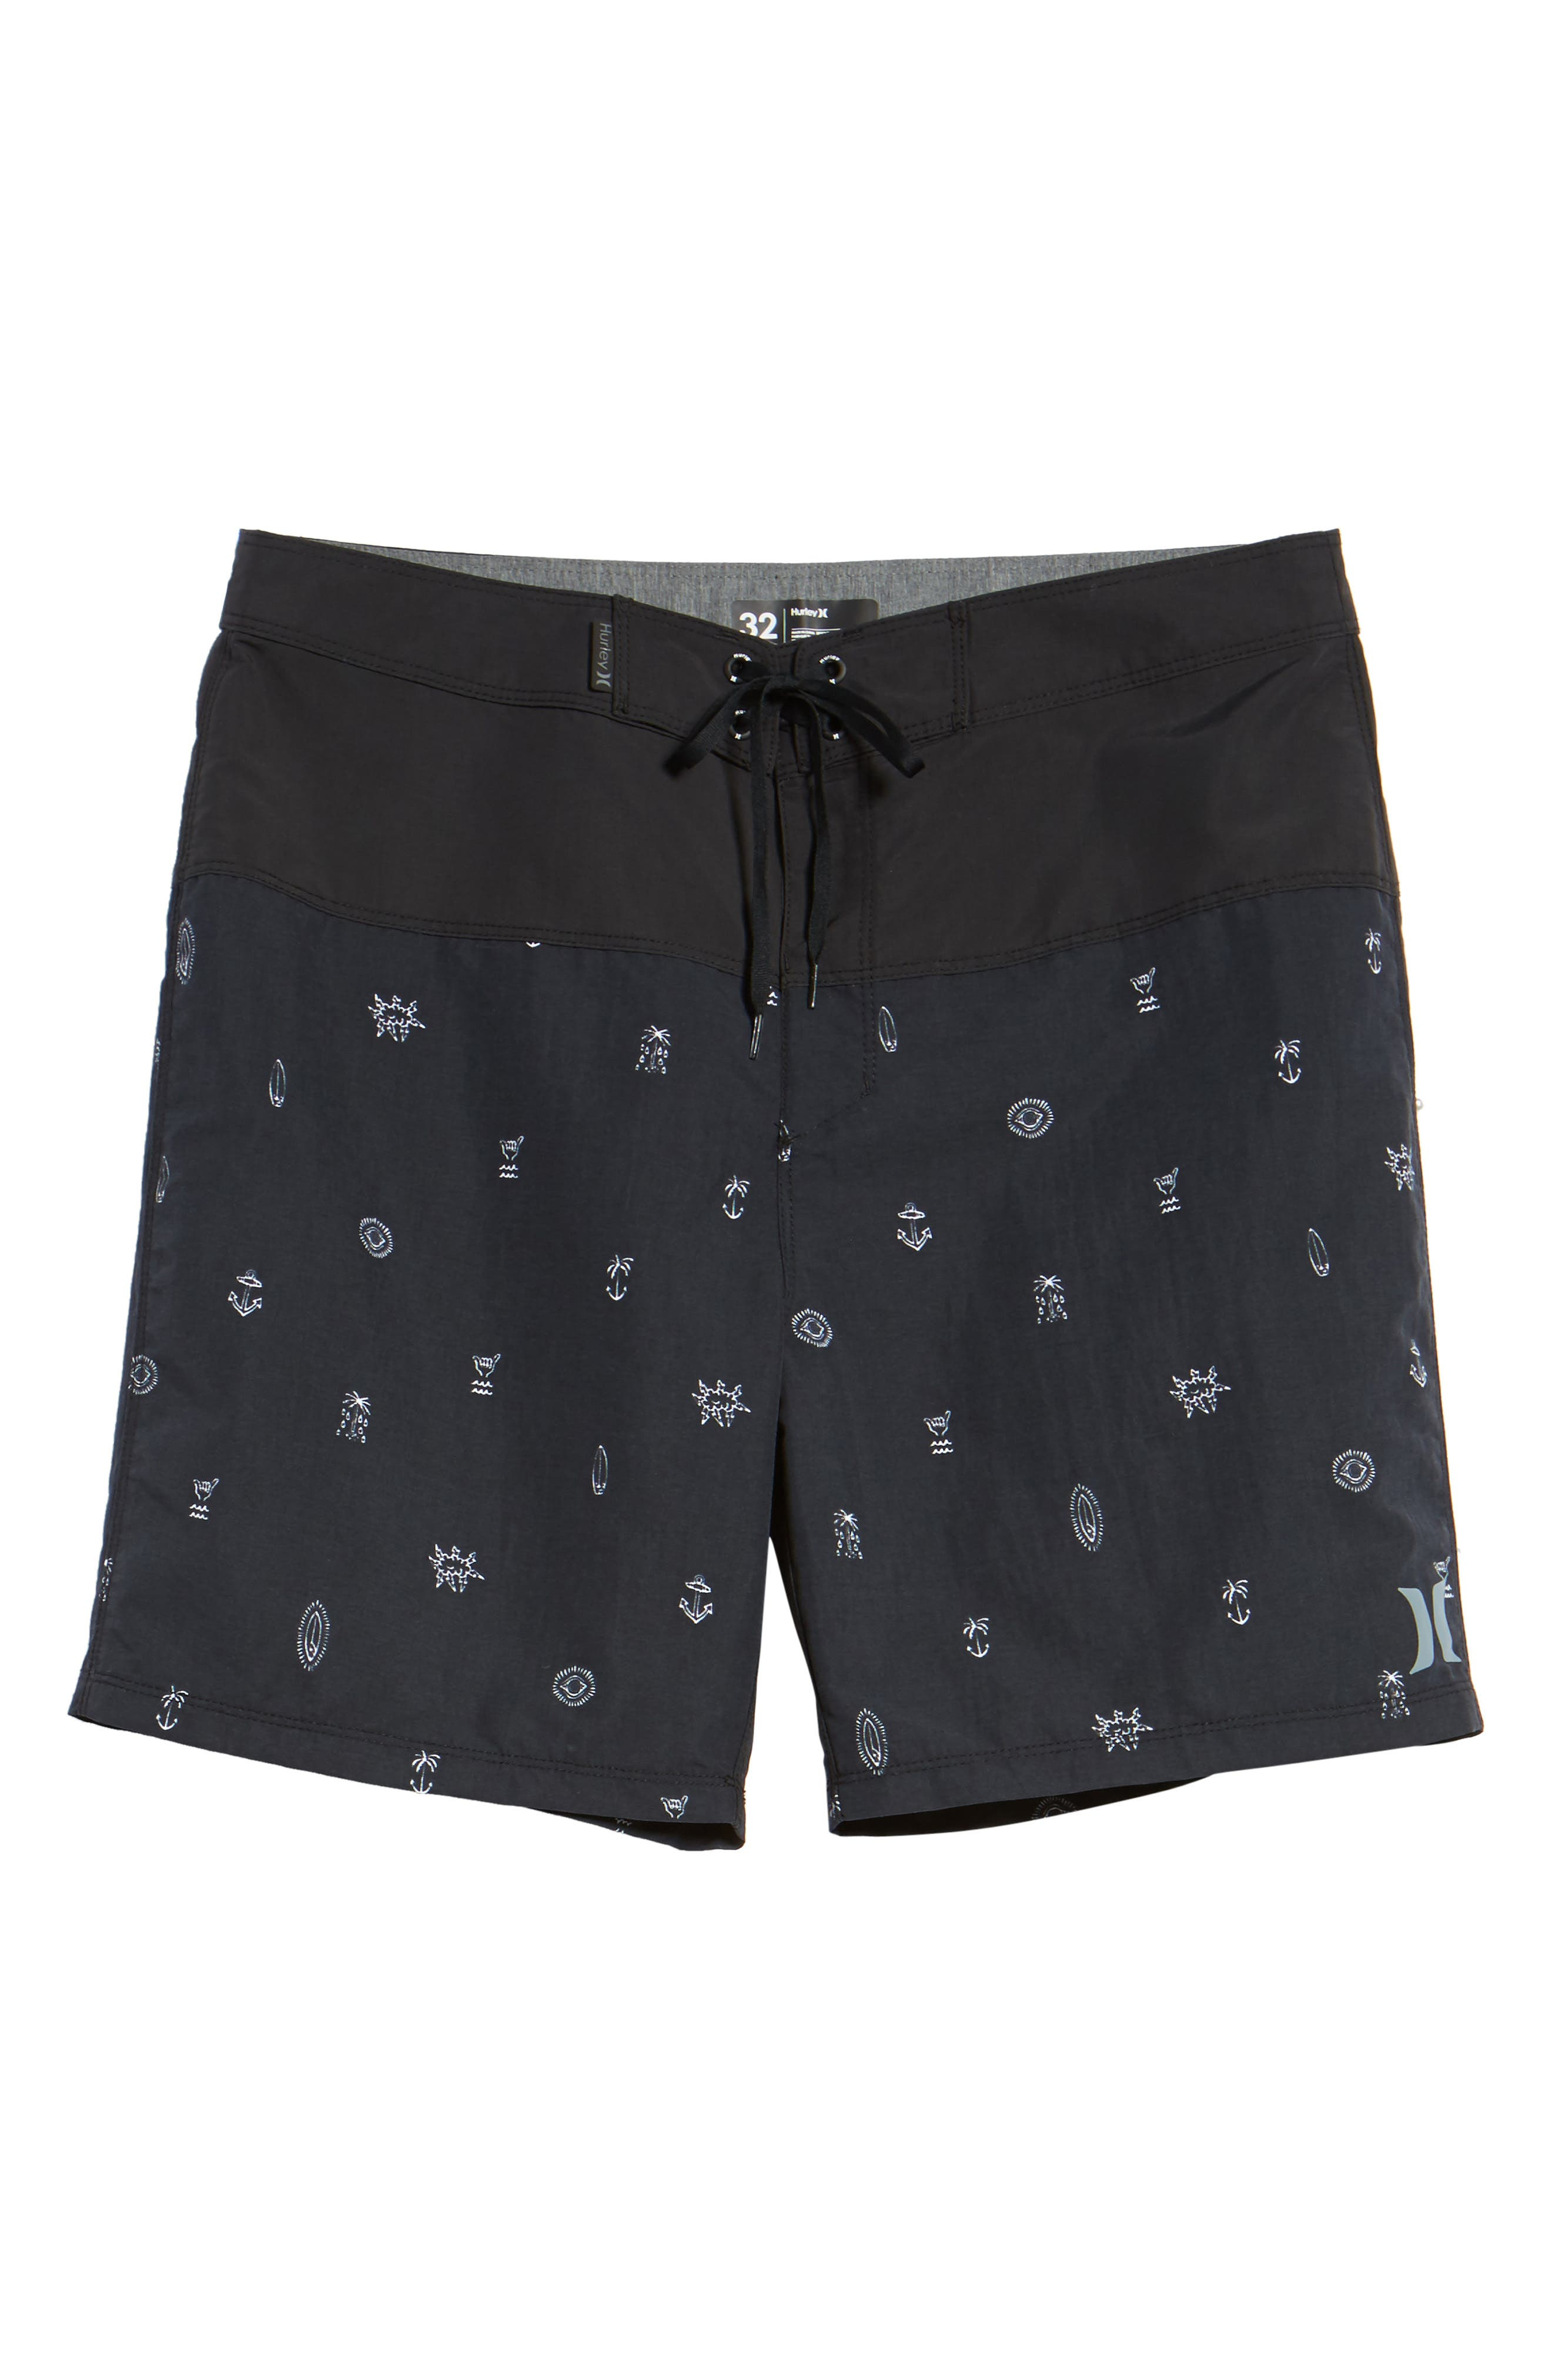 School Yards Board Shorts,                             Alternate thumbnail 6, color,                             010